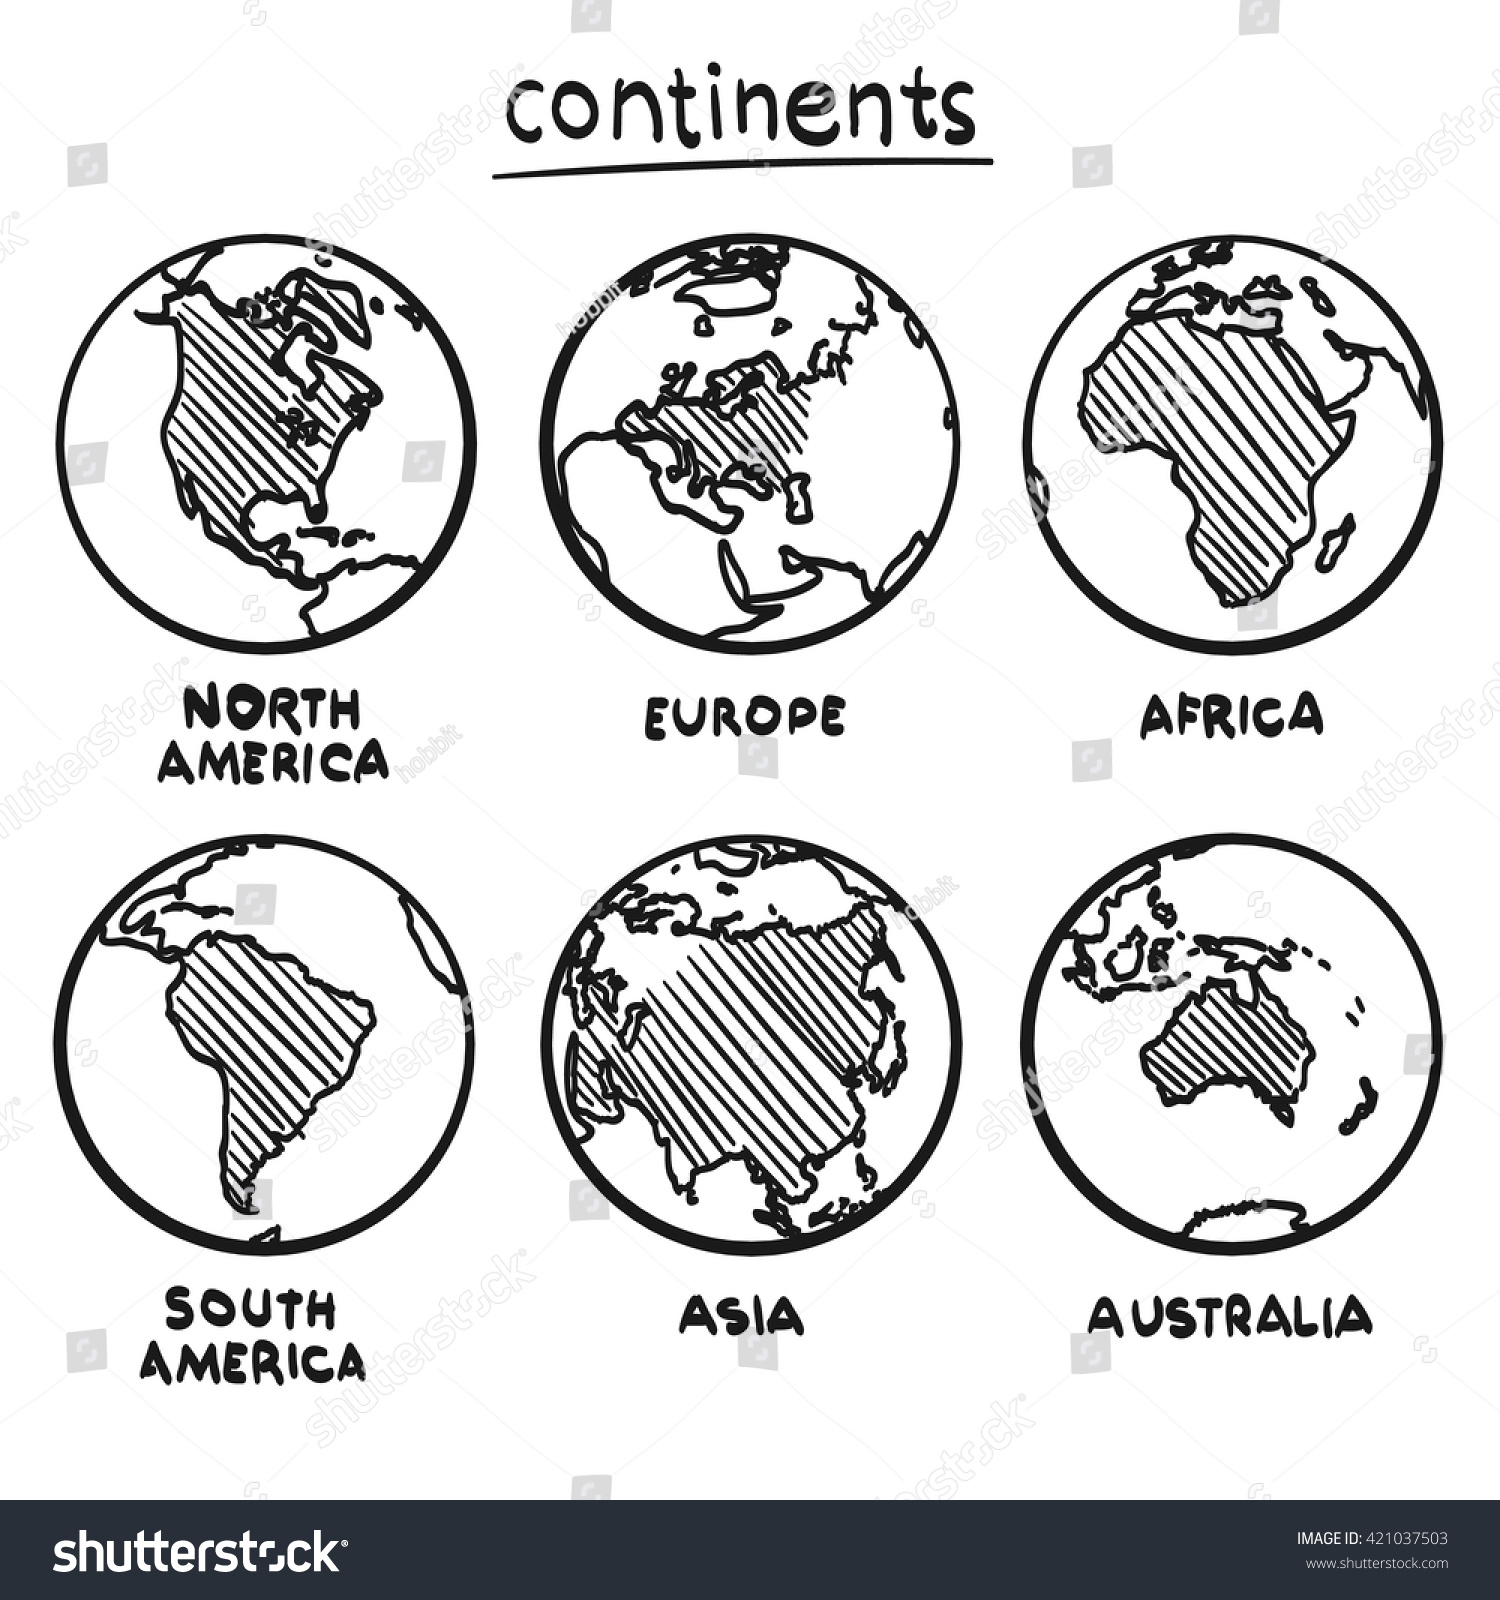 Sketch Drawing Continents Planet Continent Europe Stock